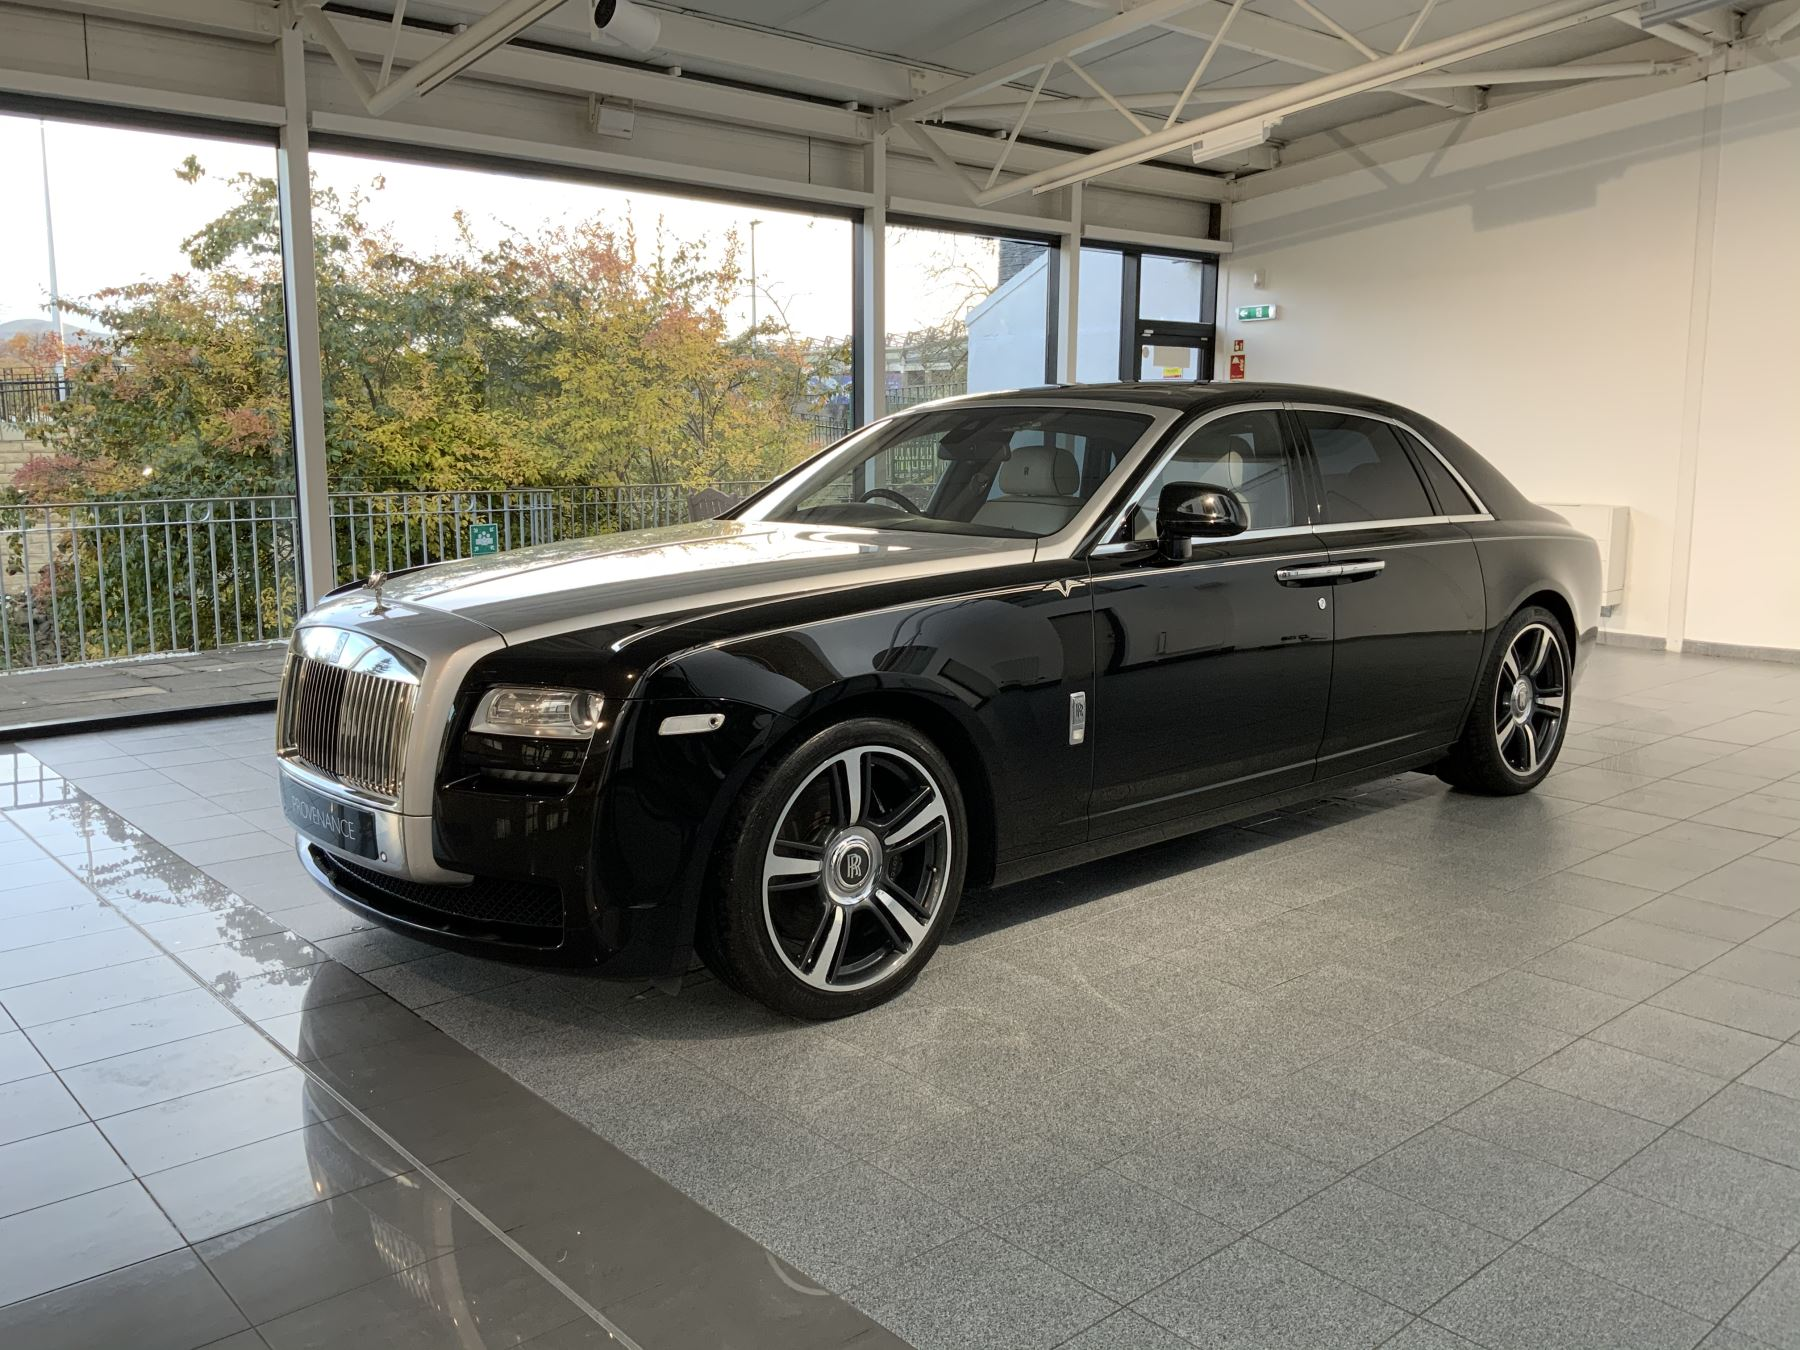 Rolls-Royce Ghost V-SPEC 4dr Auto image 11